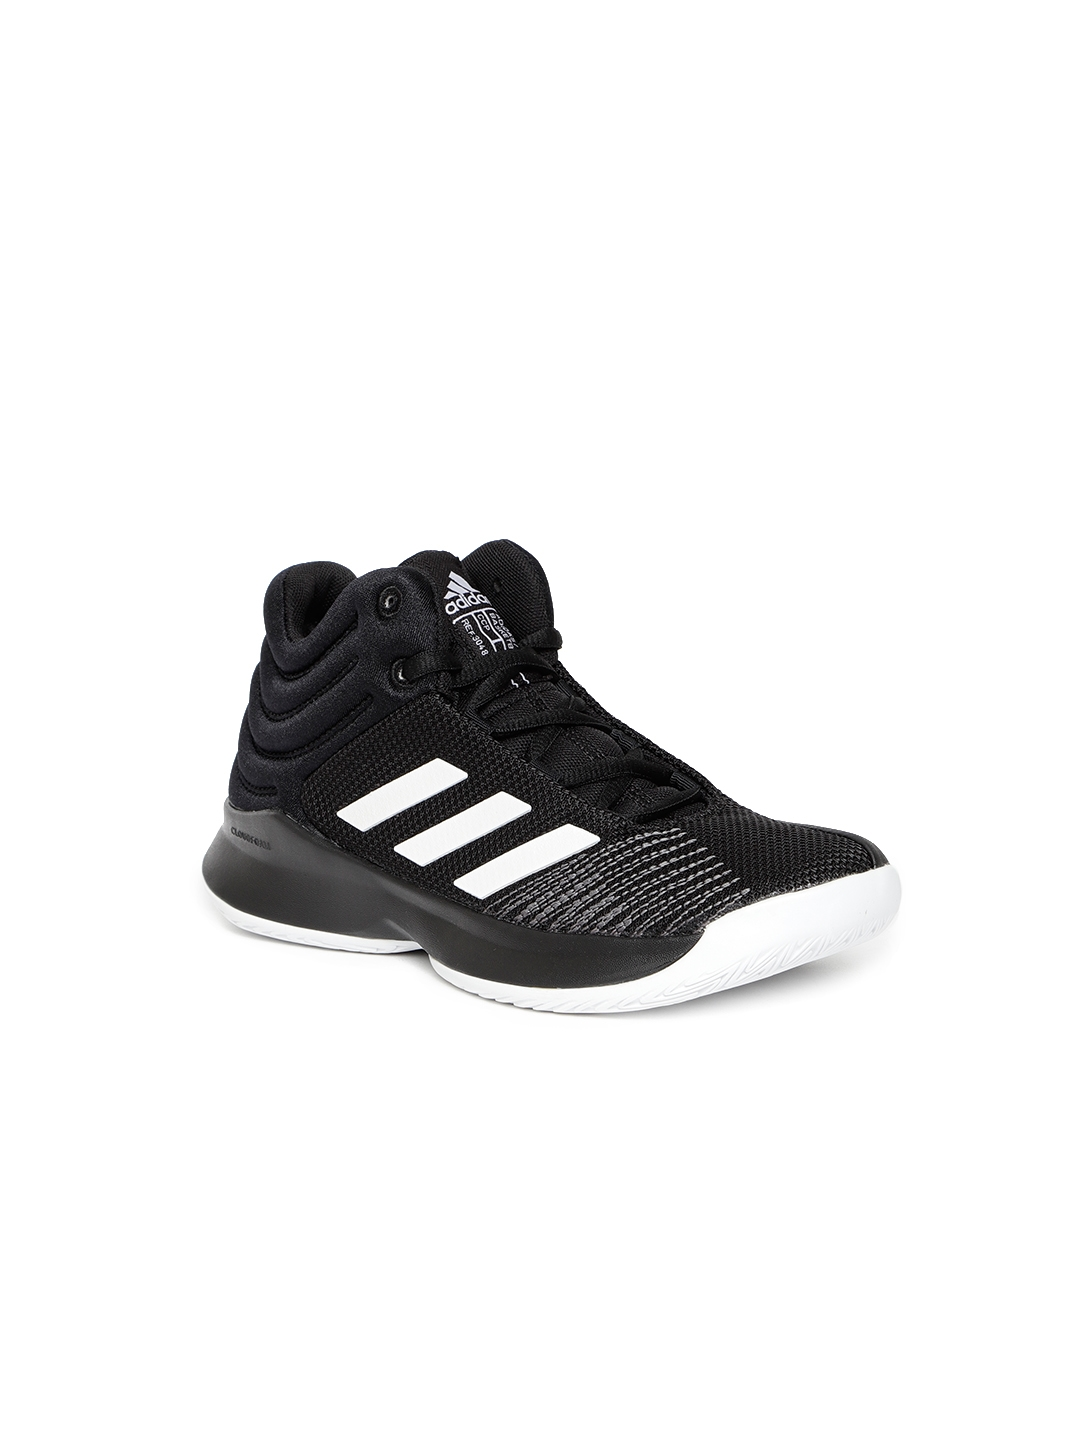 new product 2d254 87ab5 ADIDAS Kids Black Pro Spark 2018 Basketball Shoes